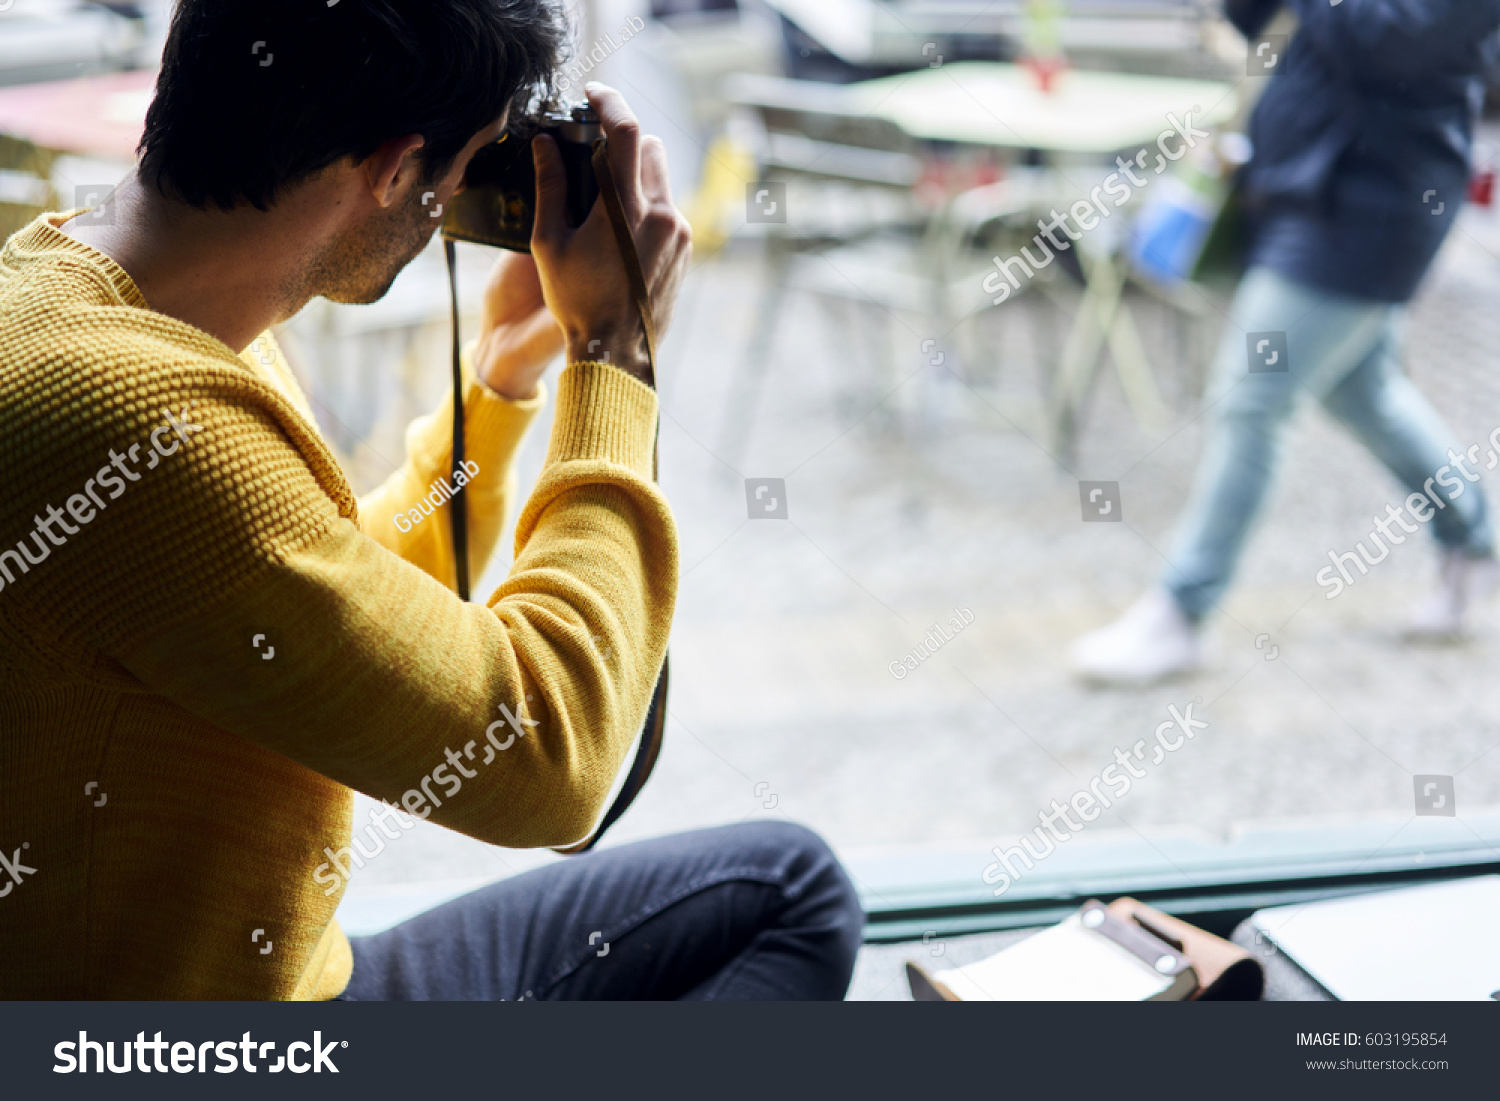 Back view of male photographer amateur taking pictures of strangers  strolling city streets capture characters while